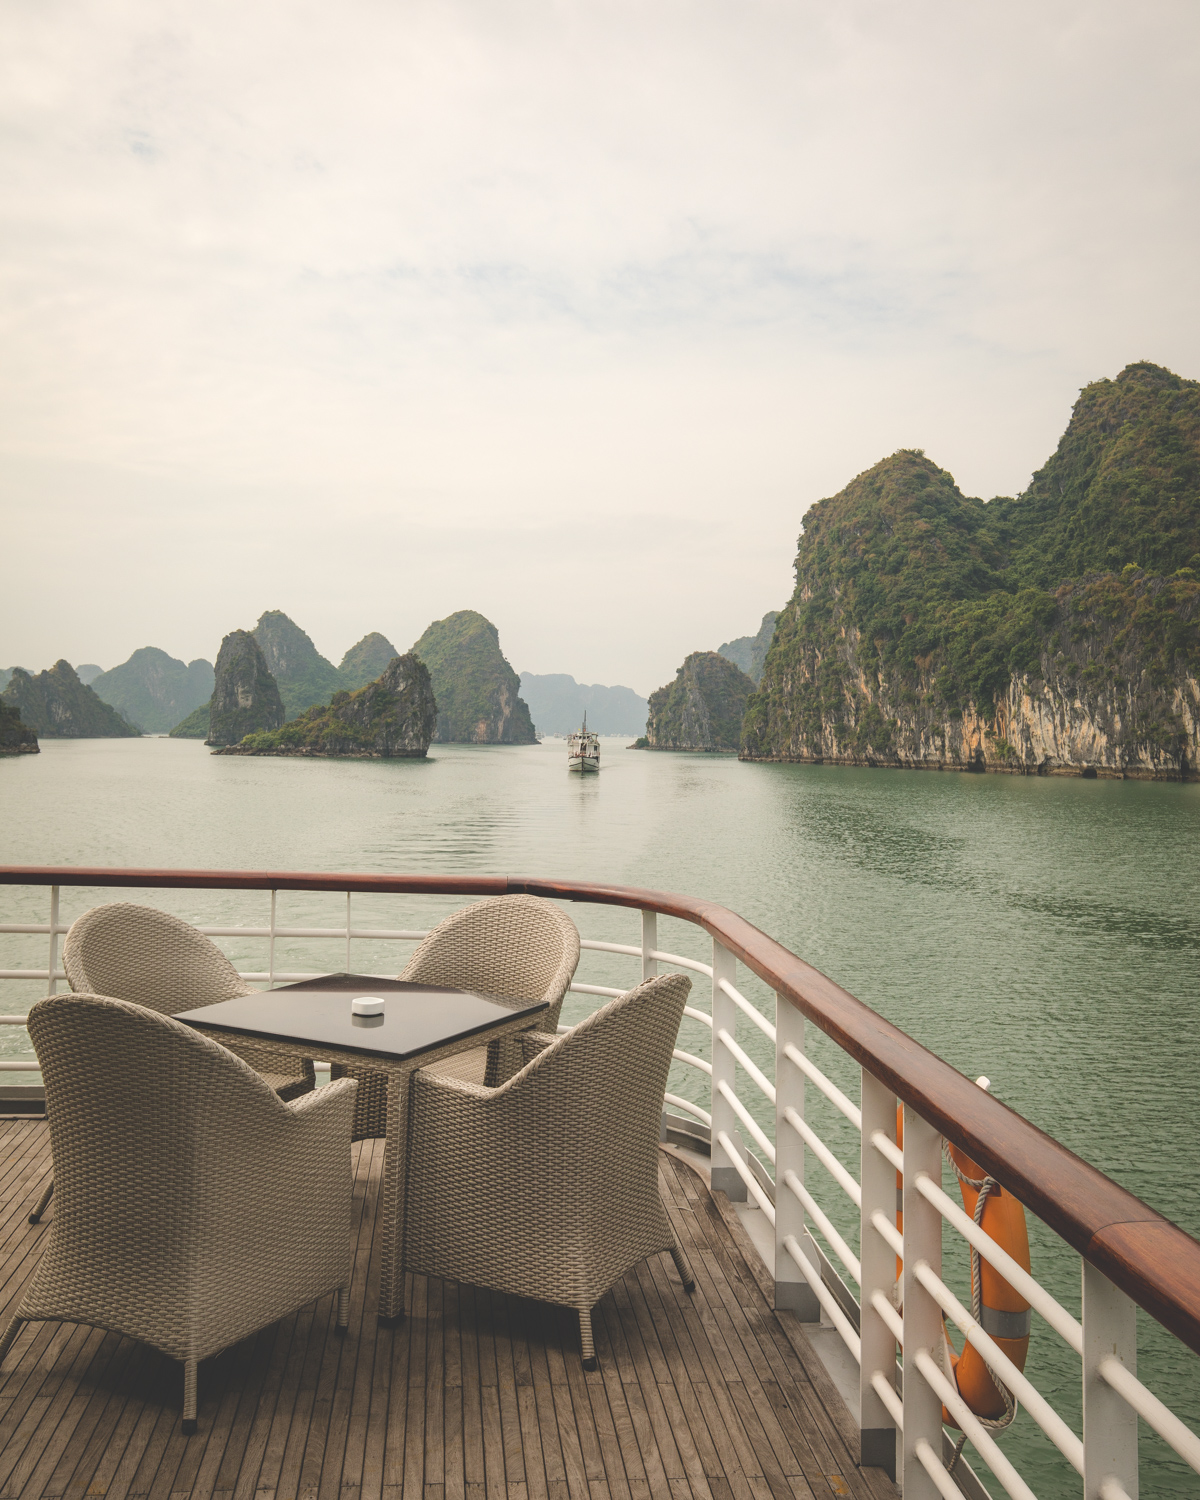 The beauty of Halong Bay from our boat